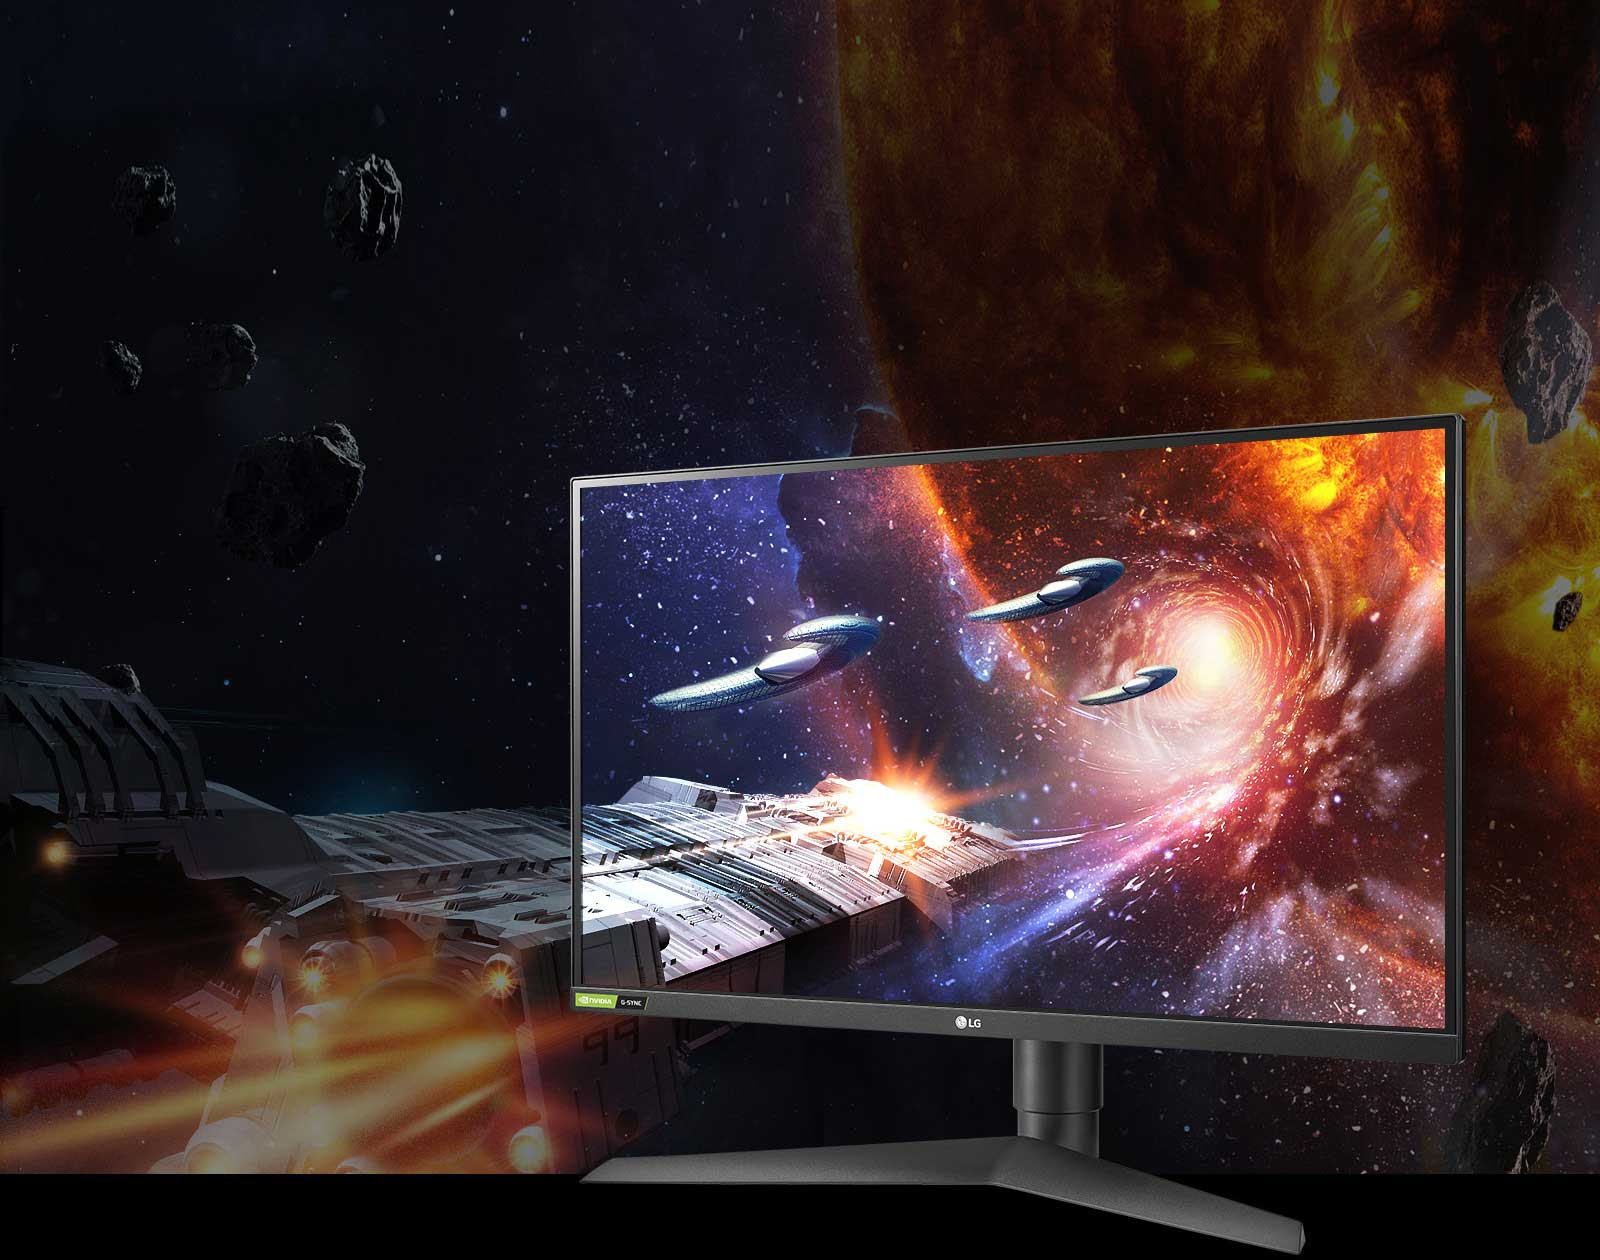 Image of 27GN750 monitor with gaming graphic on-screen demonstrating rich colors and contrast